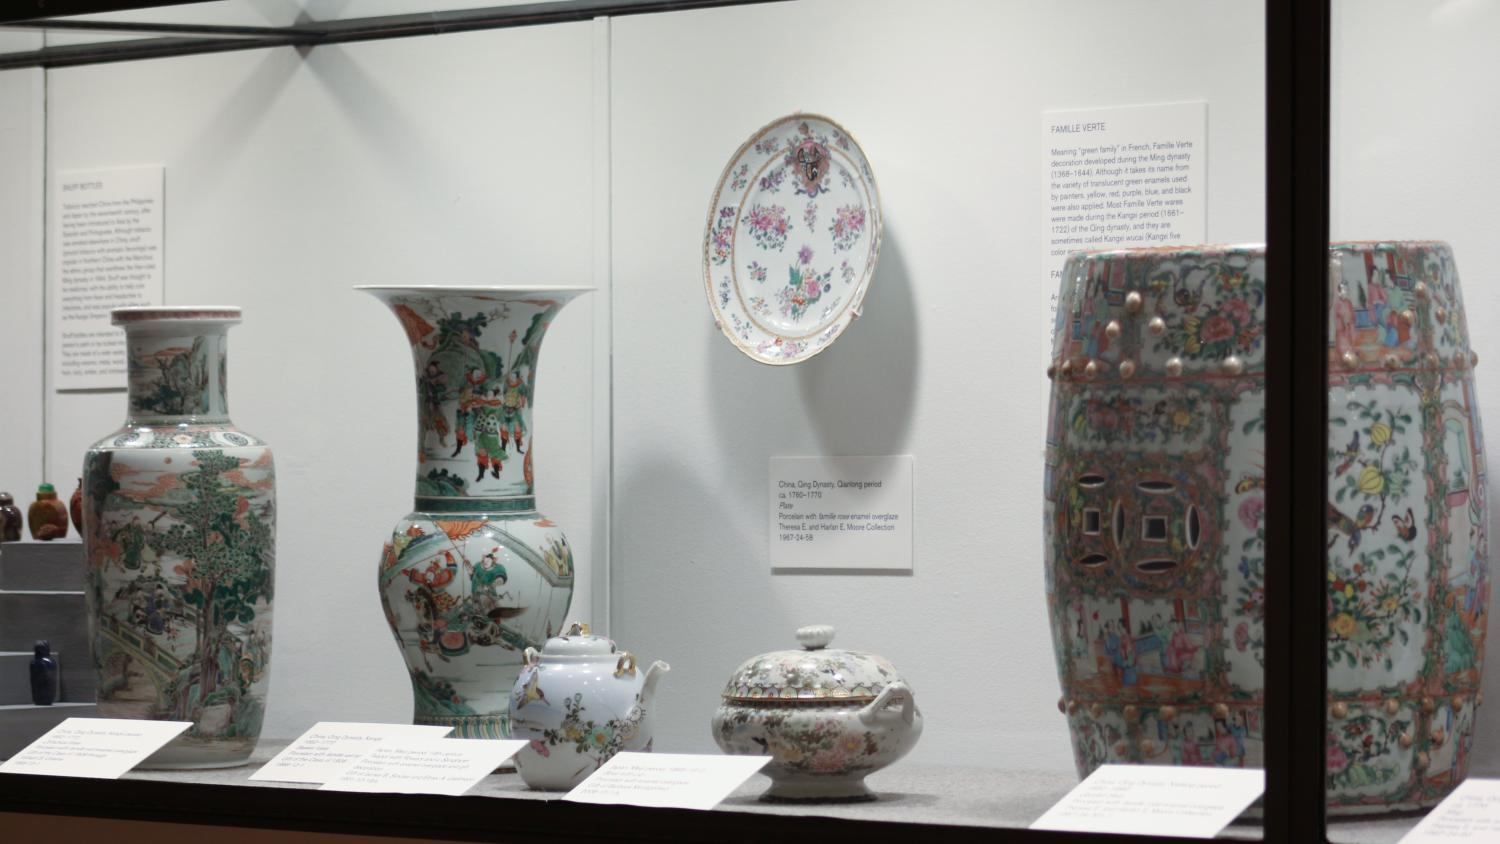 Brightly colored ceramics including a large garden stool with a rose pattern and other smaller pieces with a similar glaze and decorative painting.